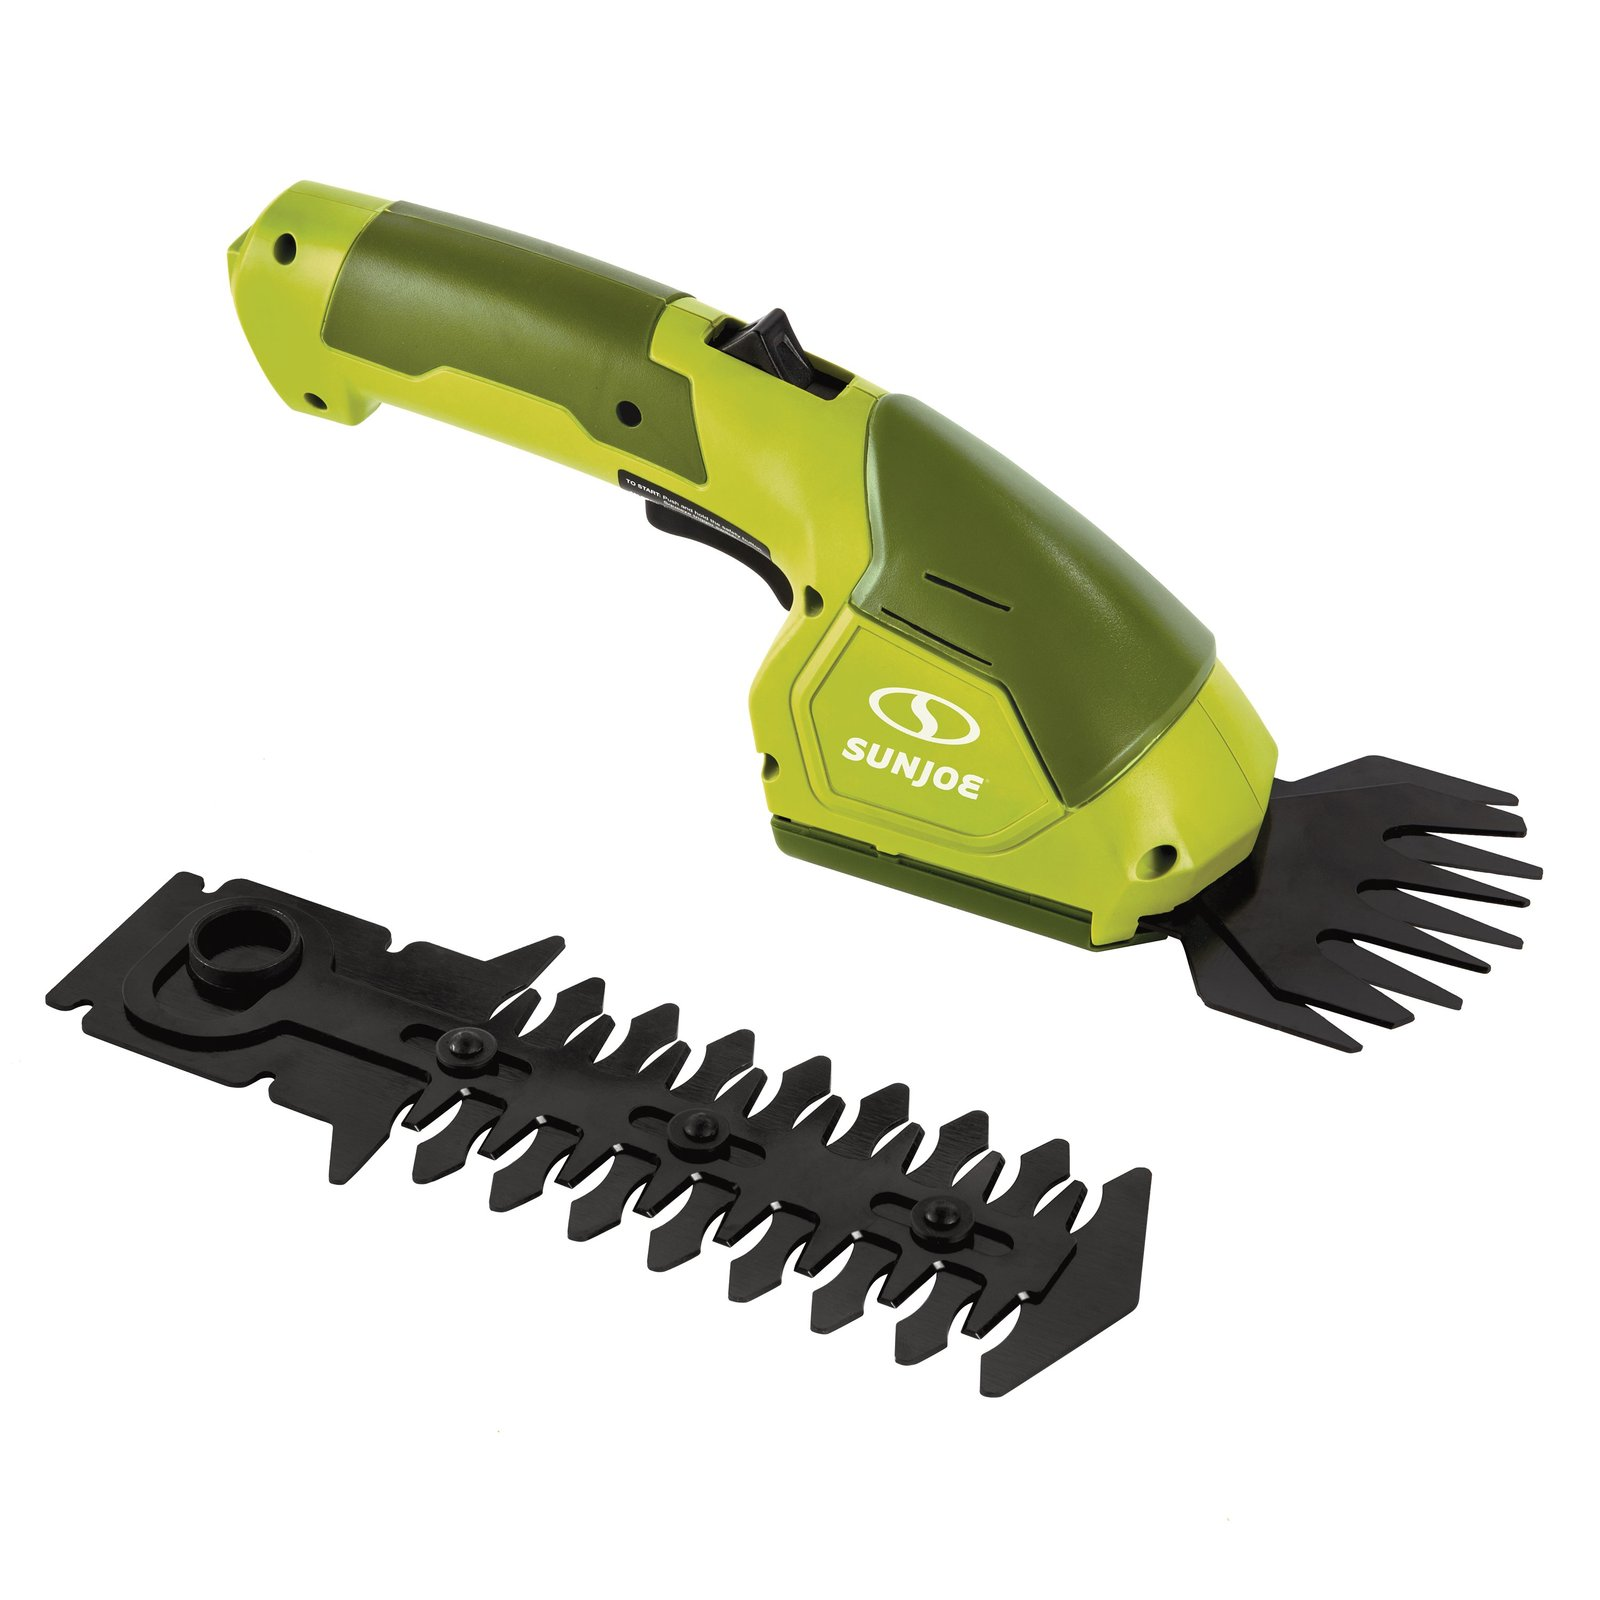 Sun Joe HJ604C Cordless Grass Shear + Hedger | 2-in-1 | 7.2 V | Green